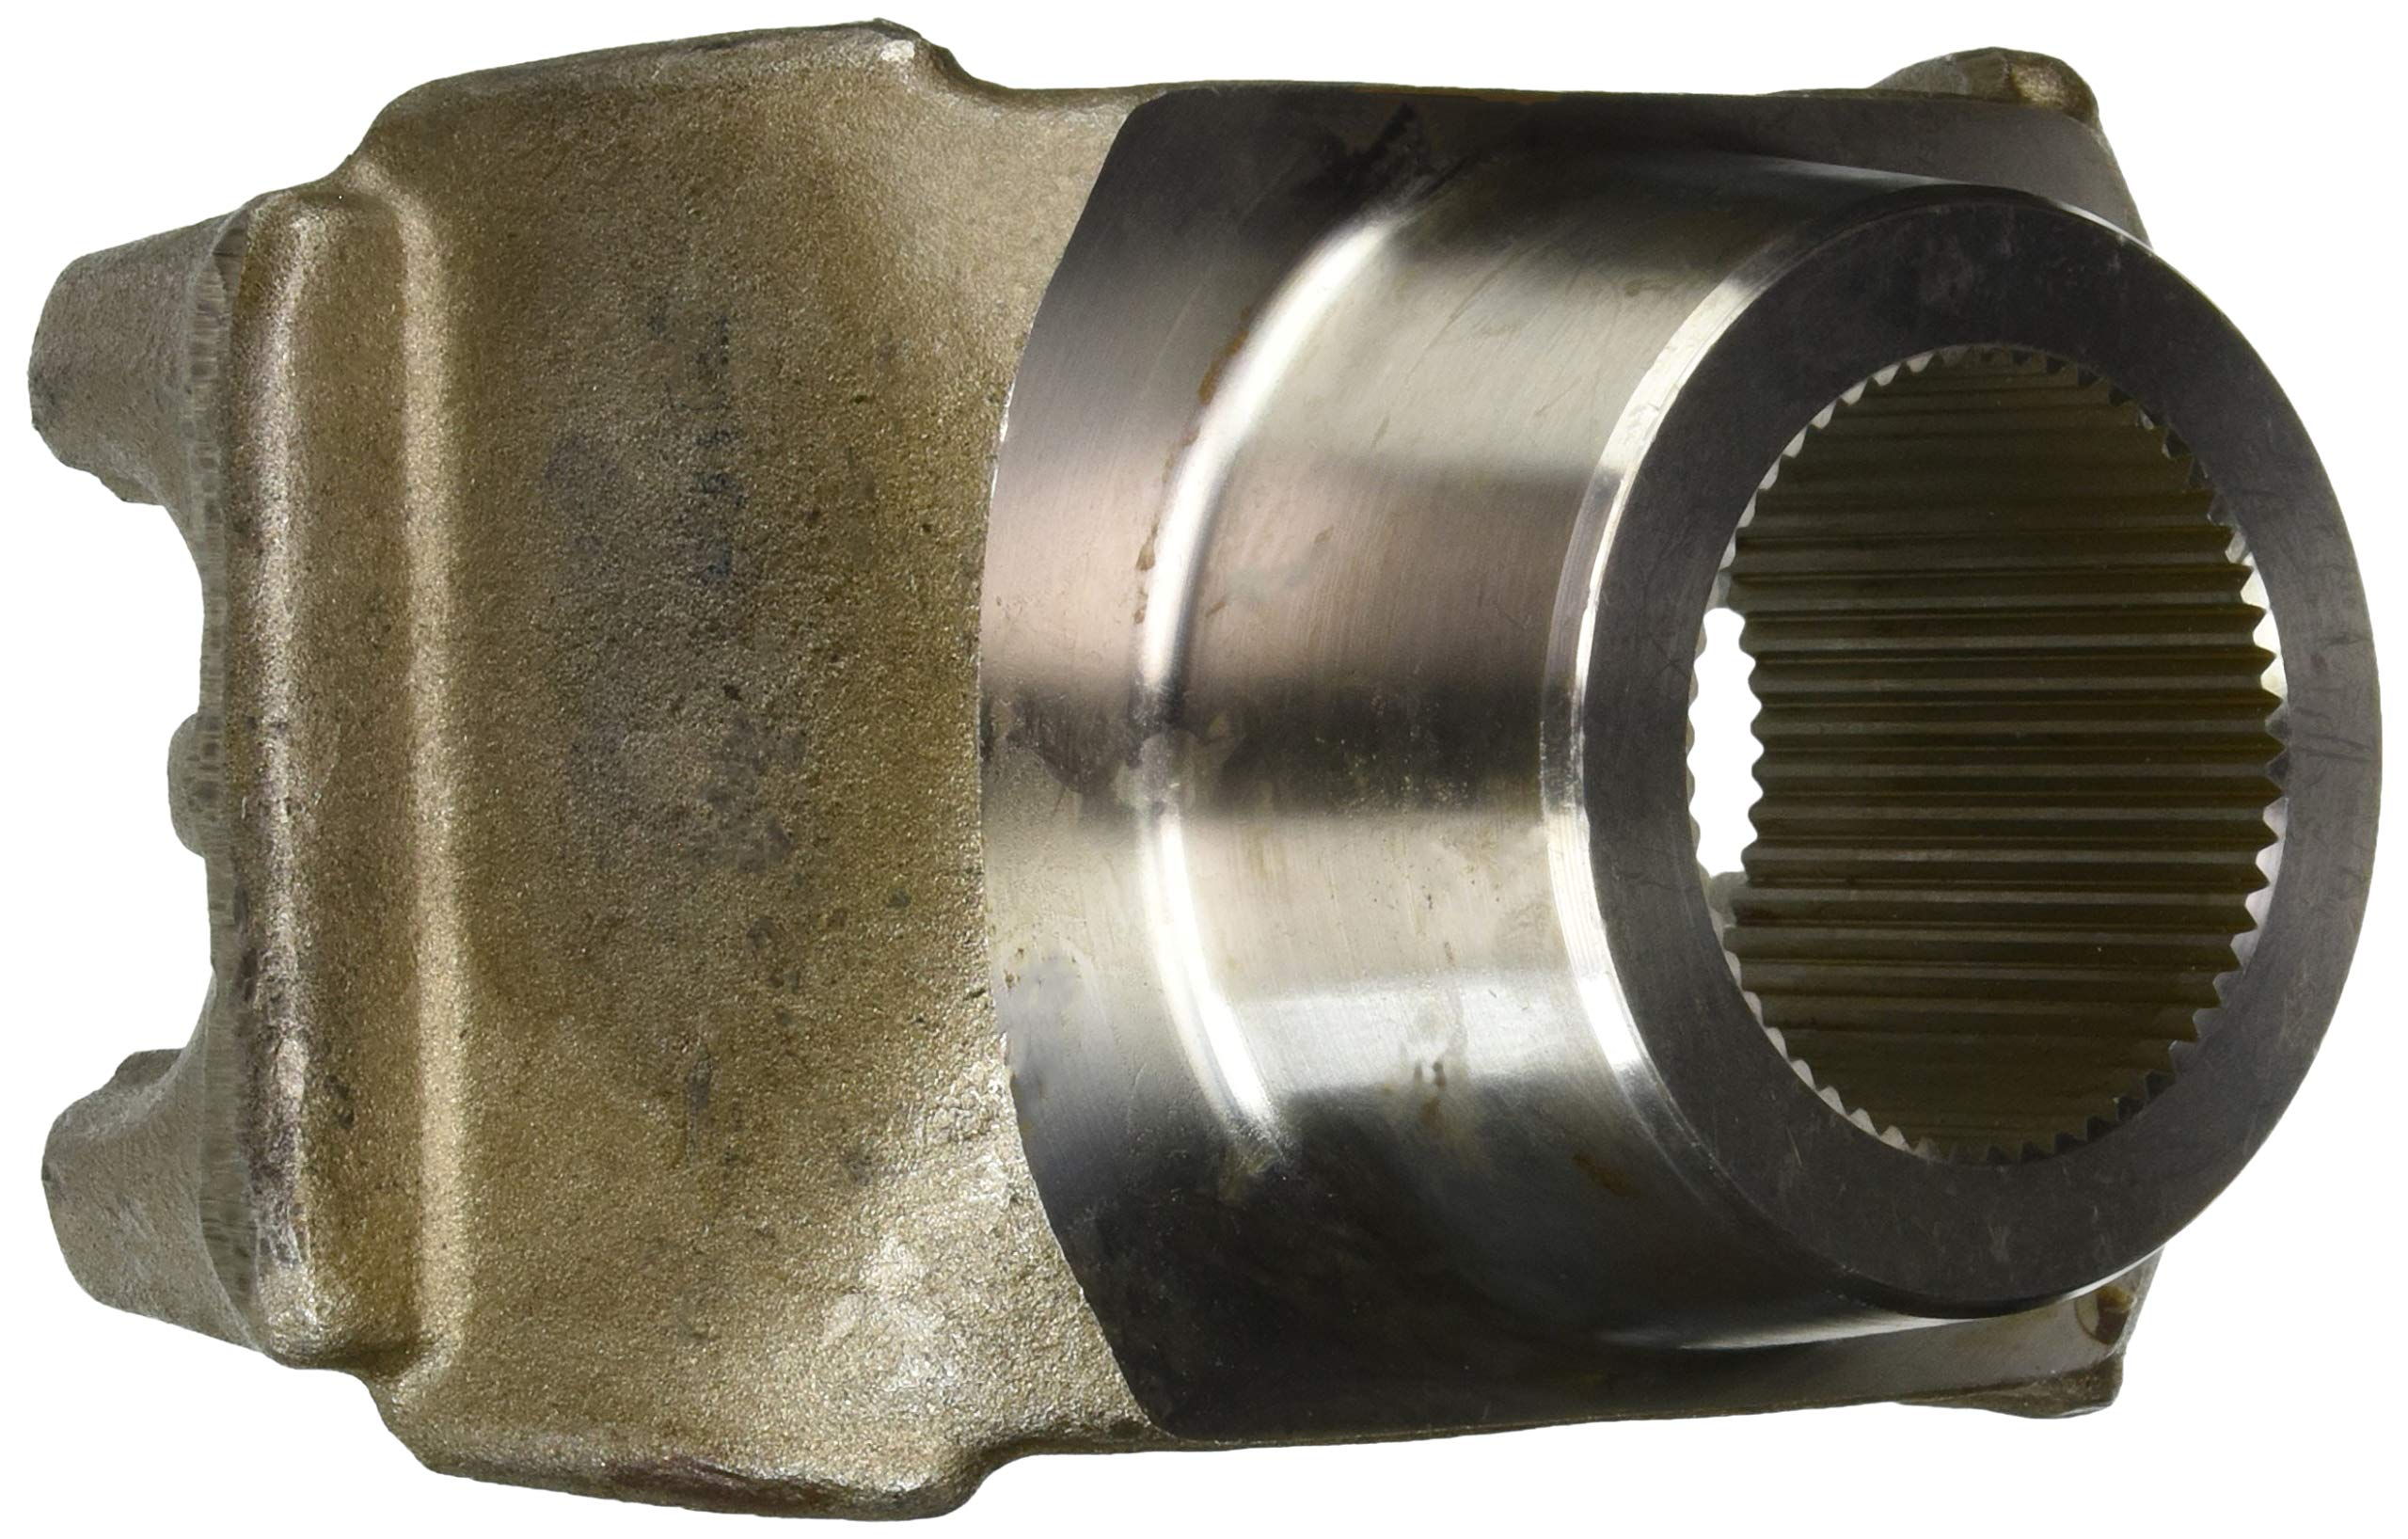 World American 6.5-4-4631-1R End Yoke DL-EY-1810-54INVSPLINE-2.7940